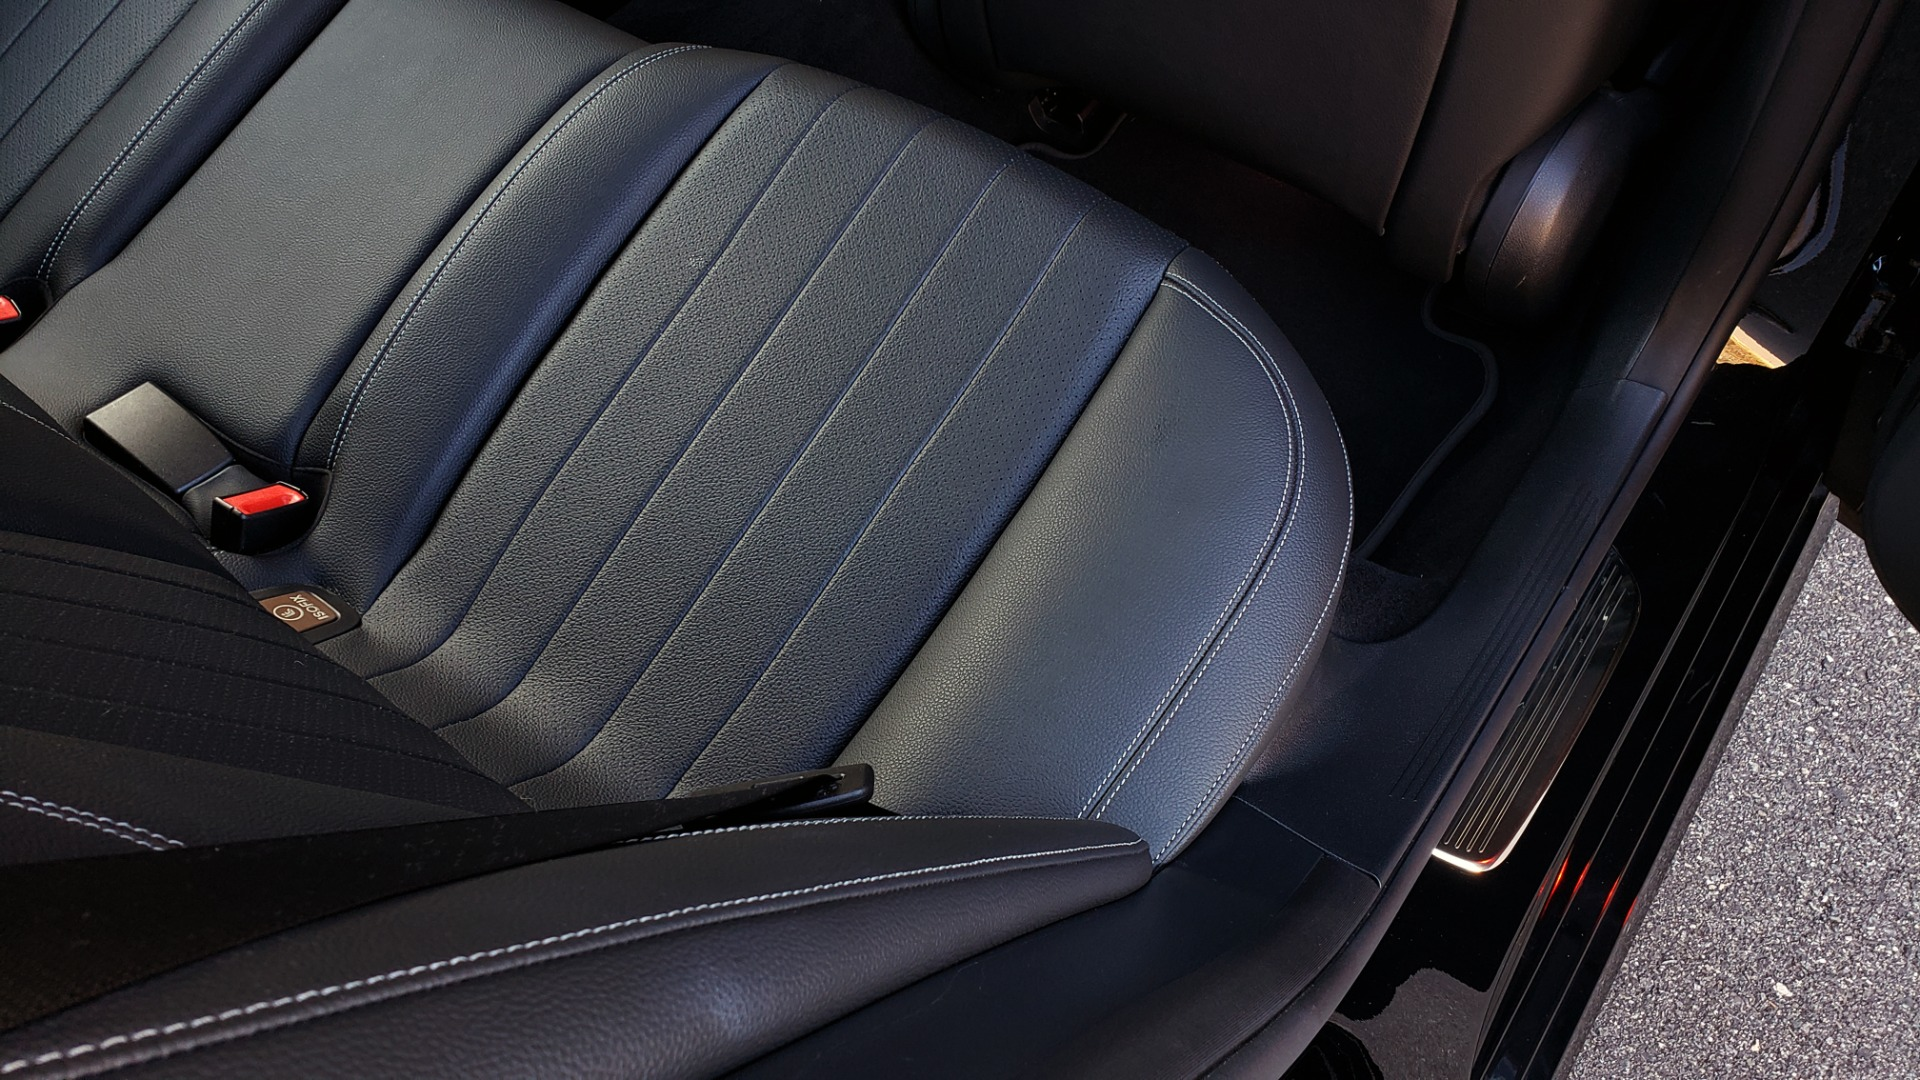 Used 2017 Mercedes-Benz E-CLASS E 300 PREMIUM / NAV / SUNROOF / BURMESTER / HTD STS / REARVIEW for sale Sold at Formula Imports in Charlotte NC 28227 72